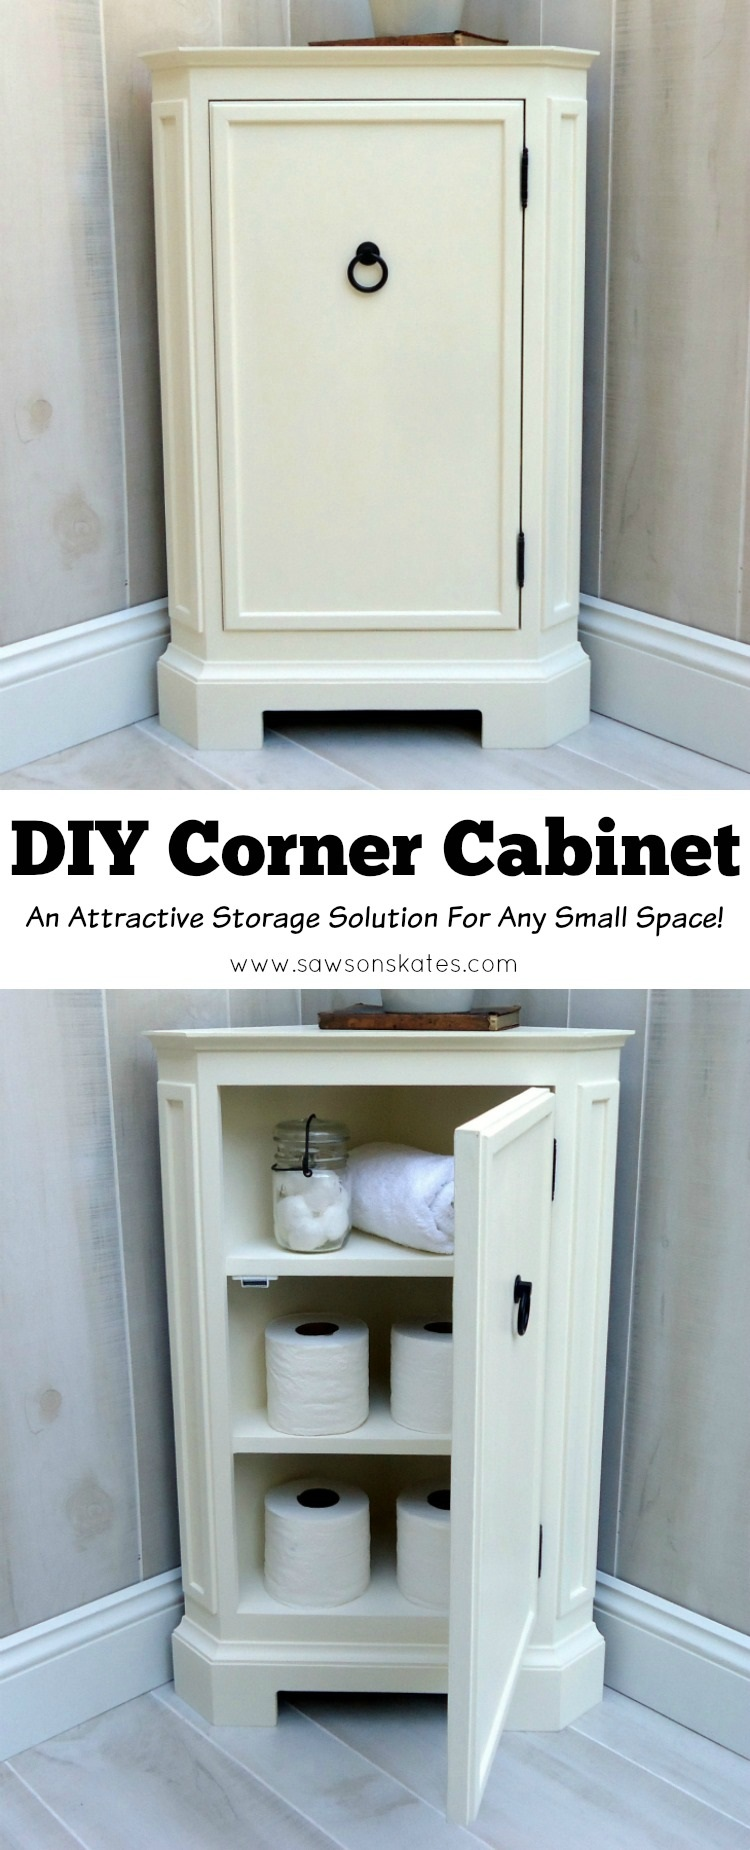 Build This Small DIY Corner Cabinet! Itu0027s Great For The